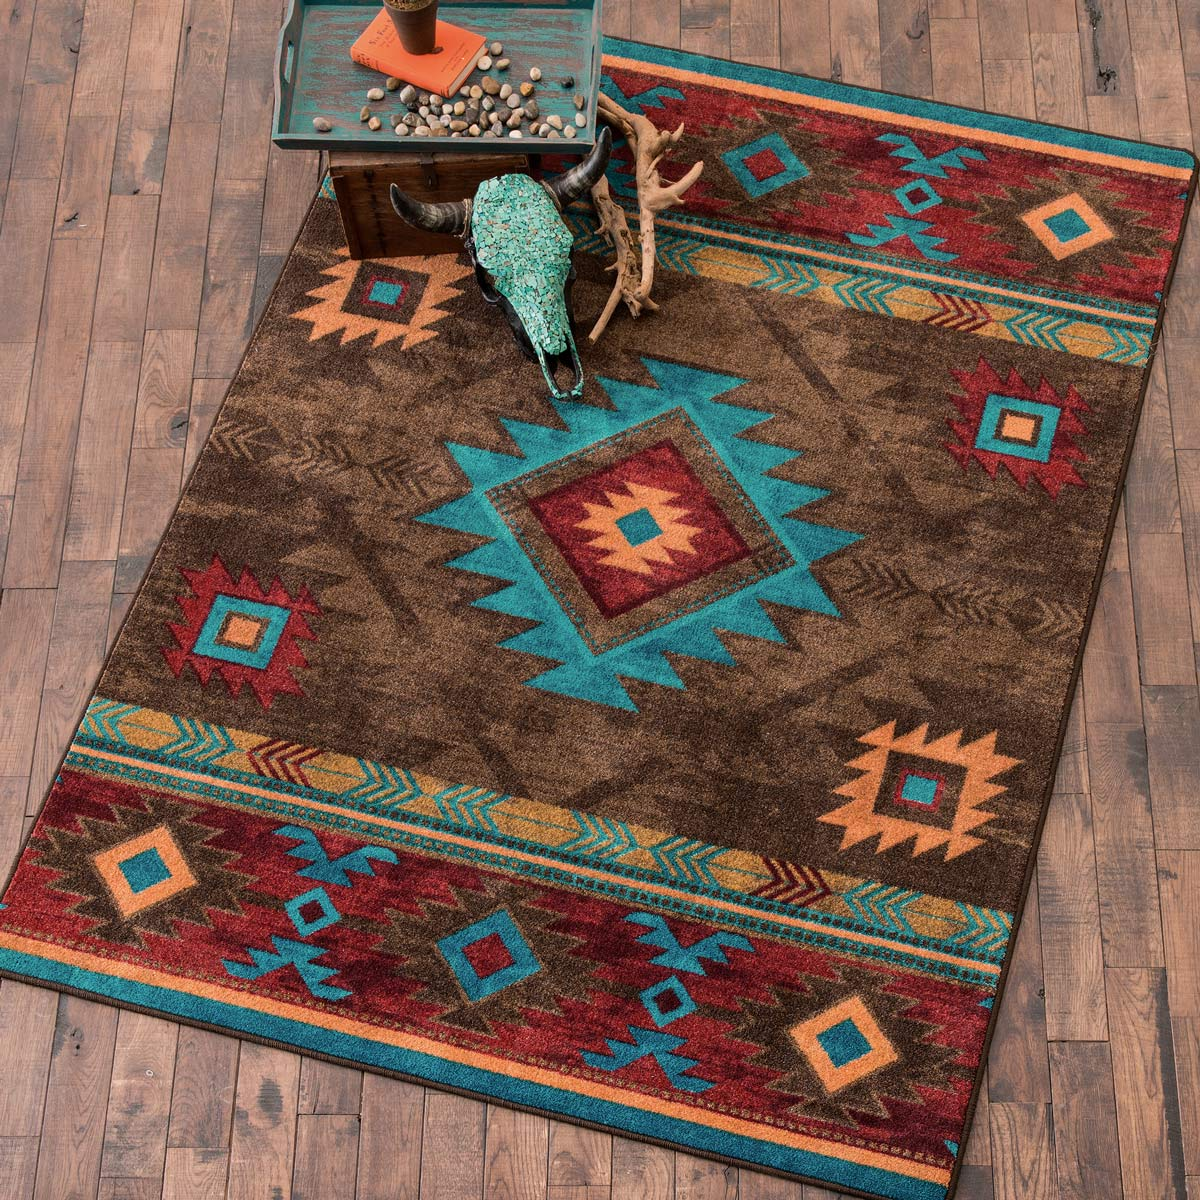 southwestern rugs southwest rugs: 3 x 4 whiskey river turquoise rug|lone star western decor NIFLDDV